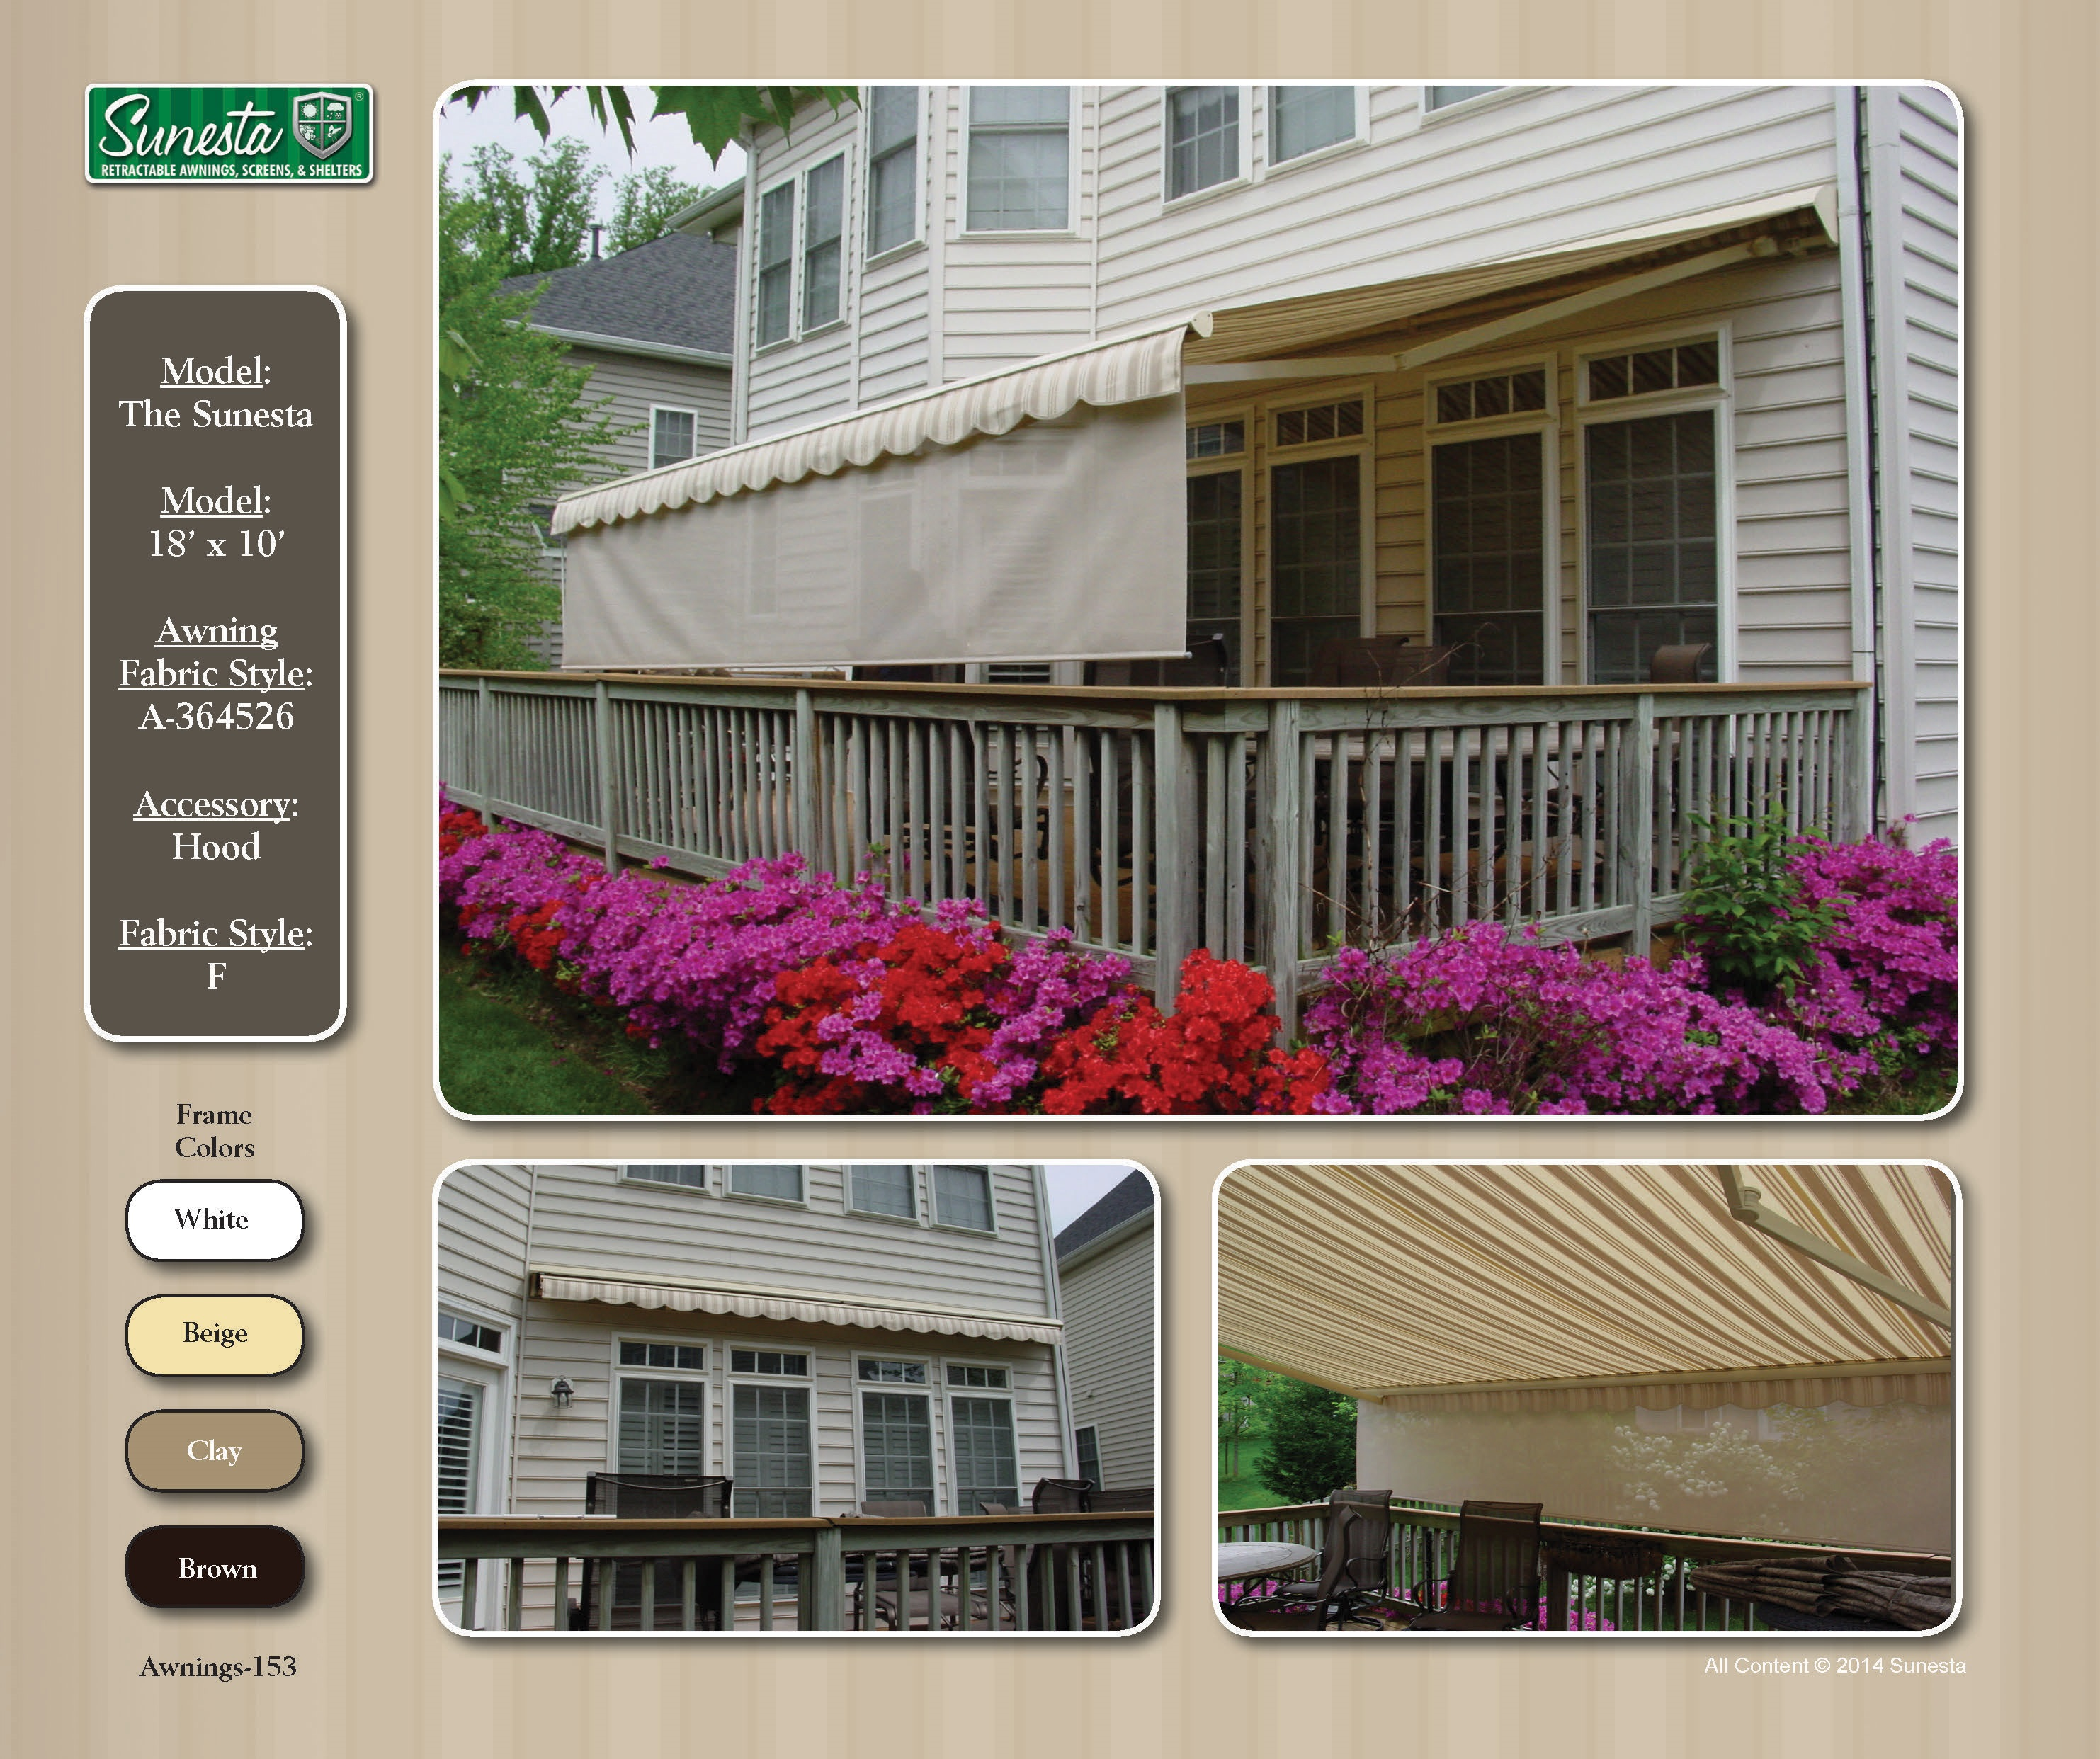 The Sunesta Retractable Awning